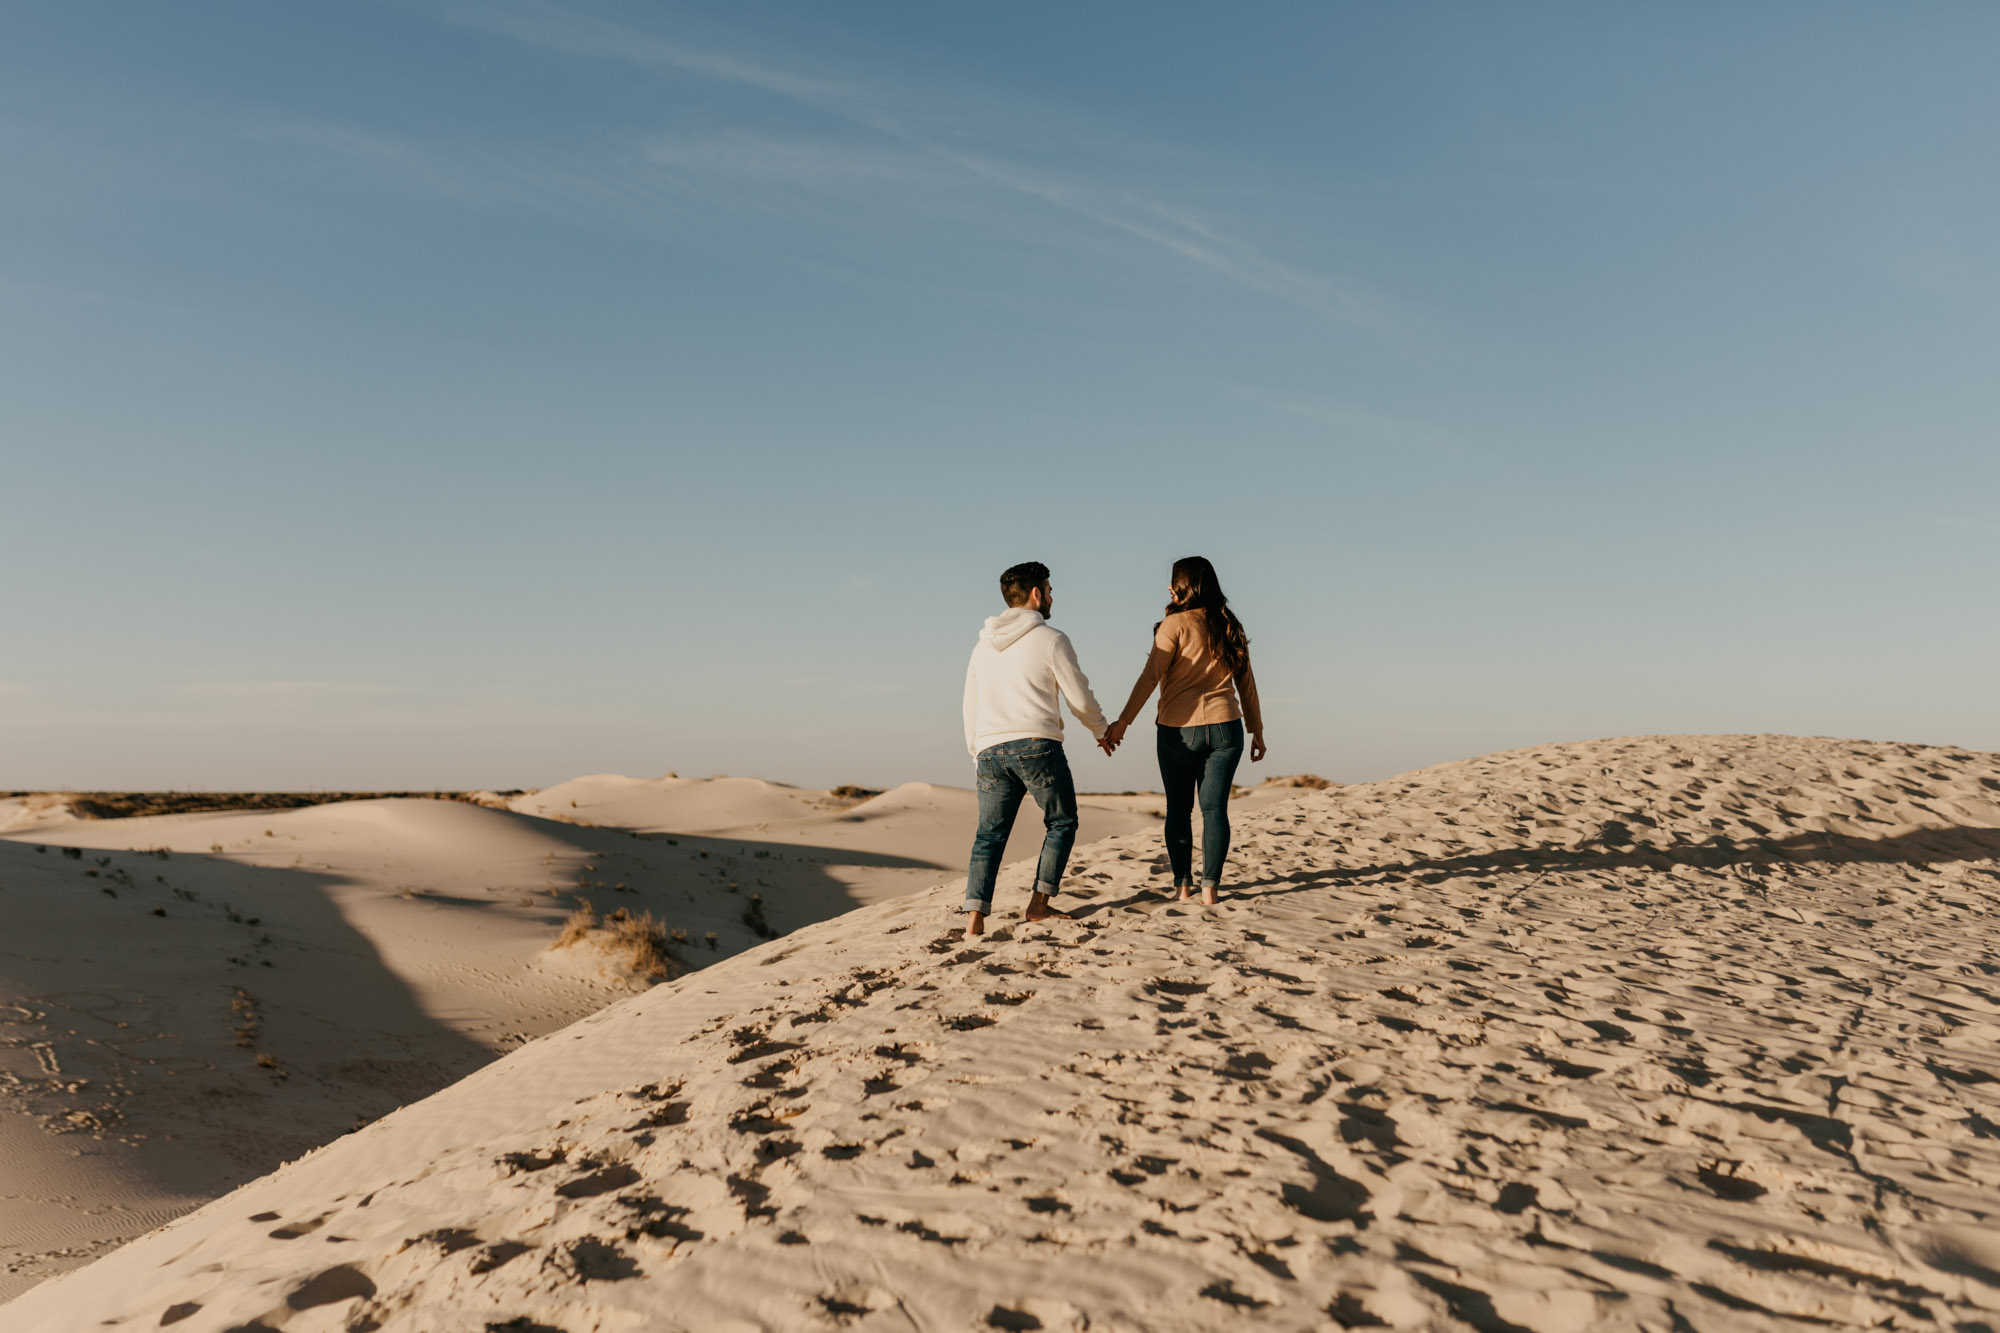 This engagement session will leave you feeling adventurous